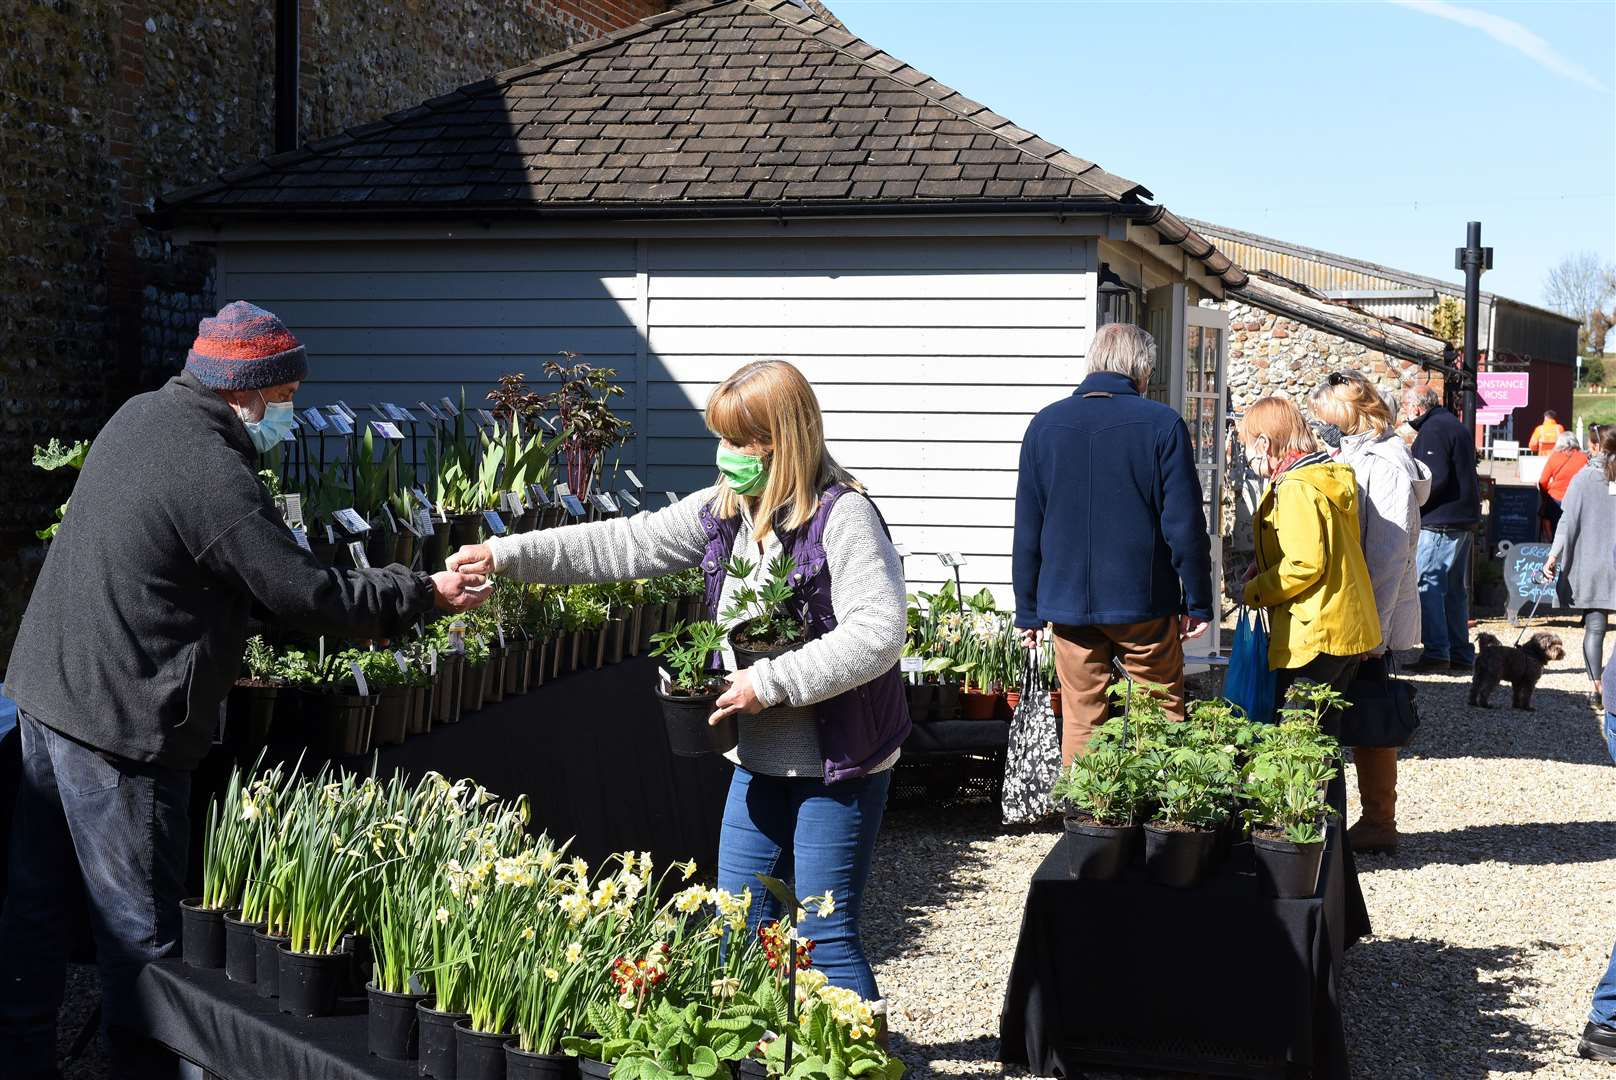 Creake Abbey Spring Gift Fair..Visitors to this Plant stall at the Spring Fair. (46288992)